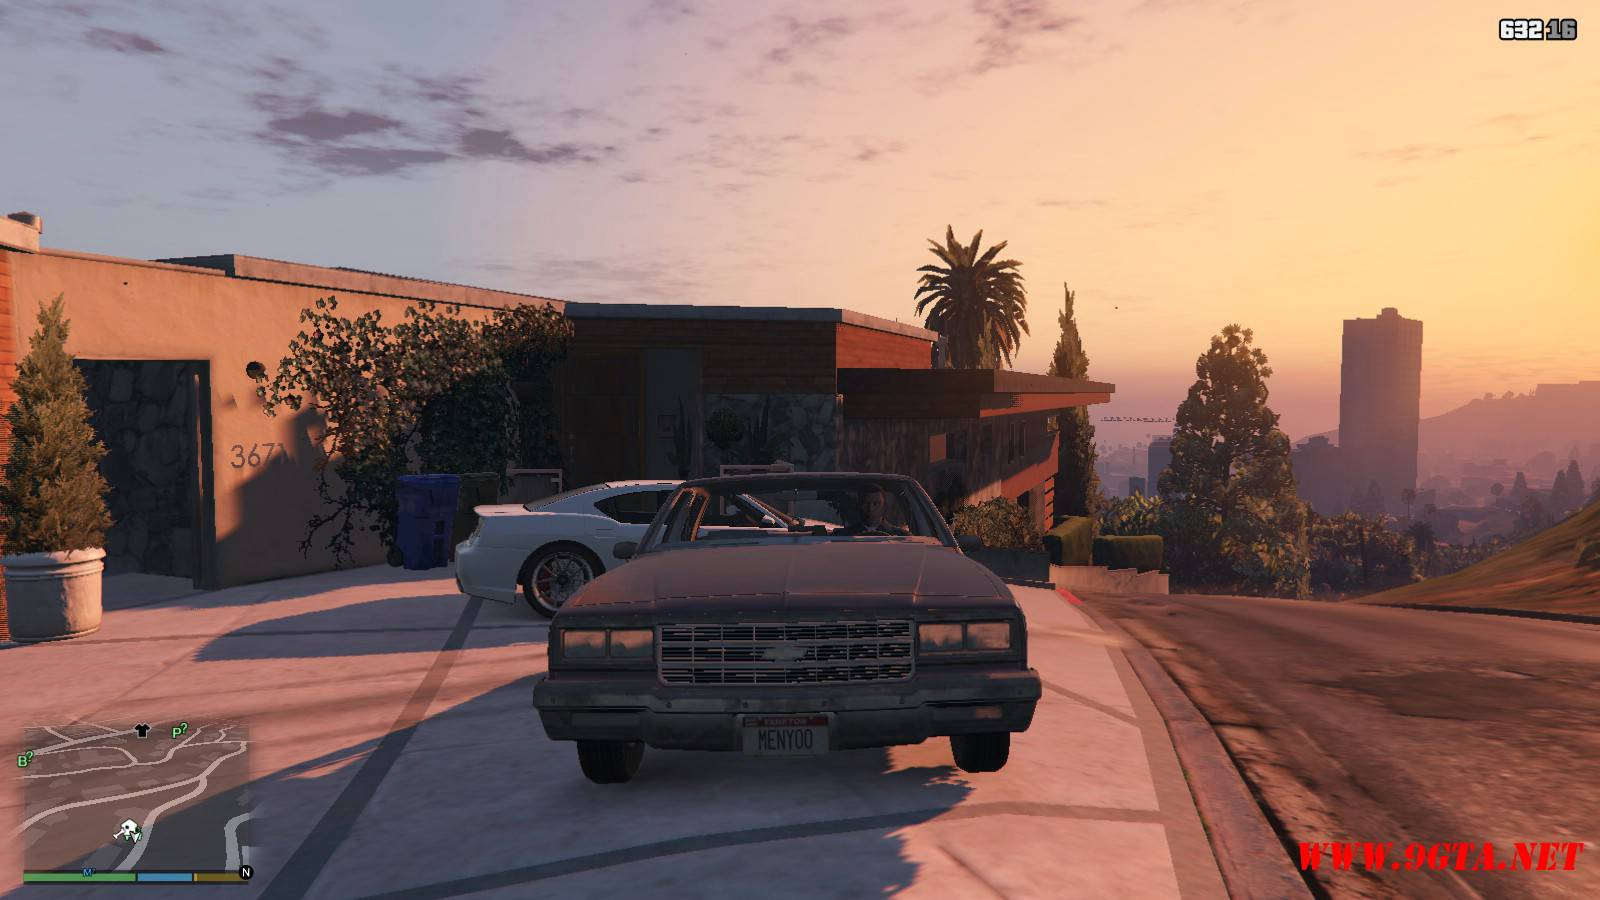 1985 Chevrolet Impala v1.1 Mod For GTA5 (12)